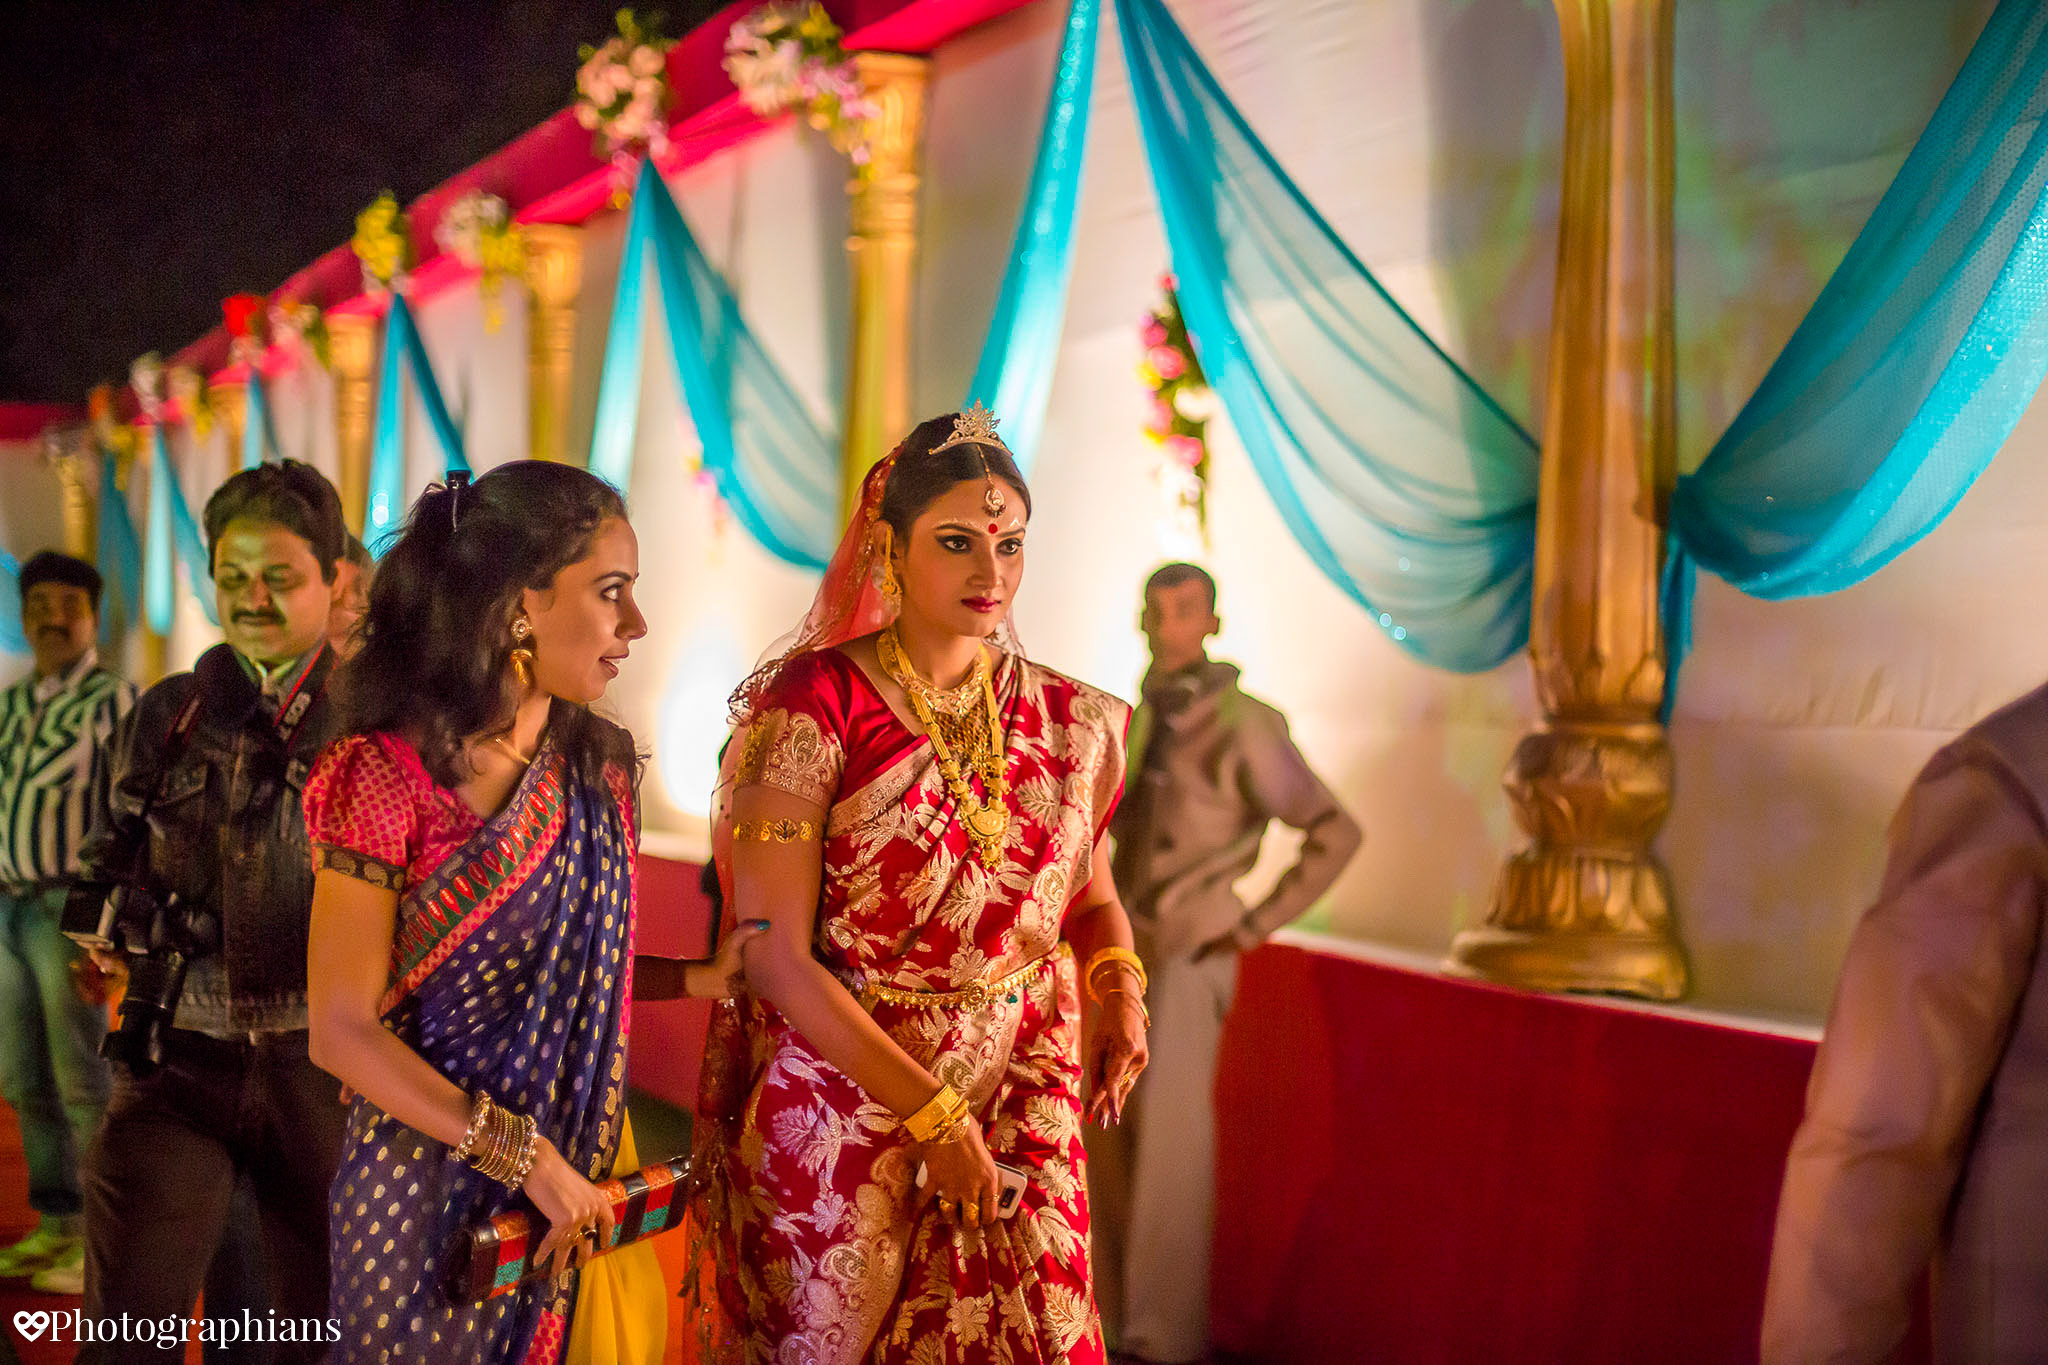 Photographians_Indian_Wedding_Durgapur_027